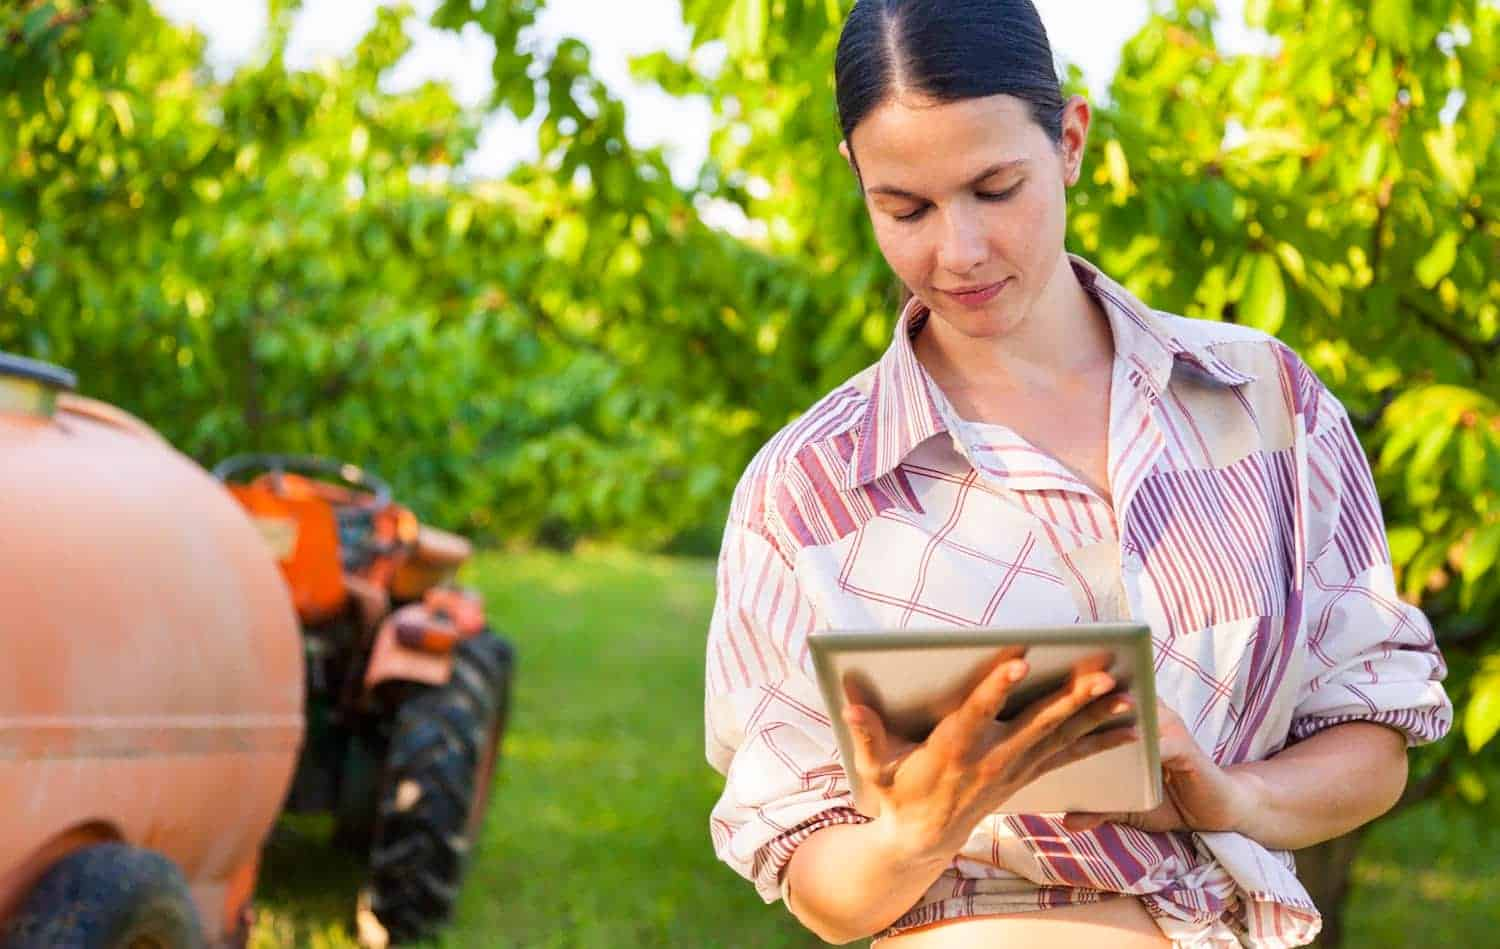 A new report, Refresh: Food and Tech, from Soil to Supper, is a new approach to talking about technology's part in agriculture, playing both good and bad roles in the food system.